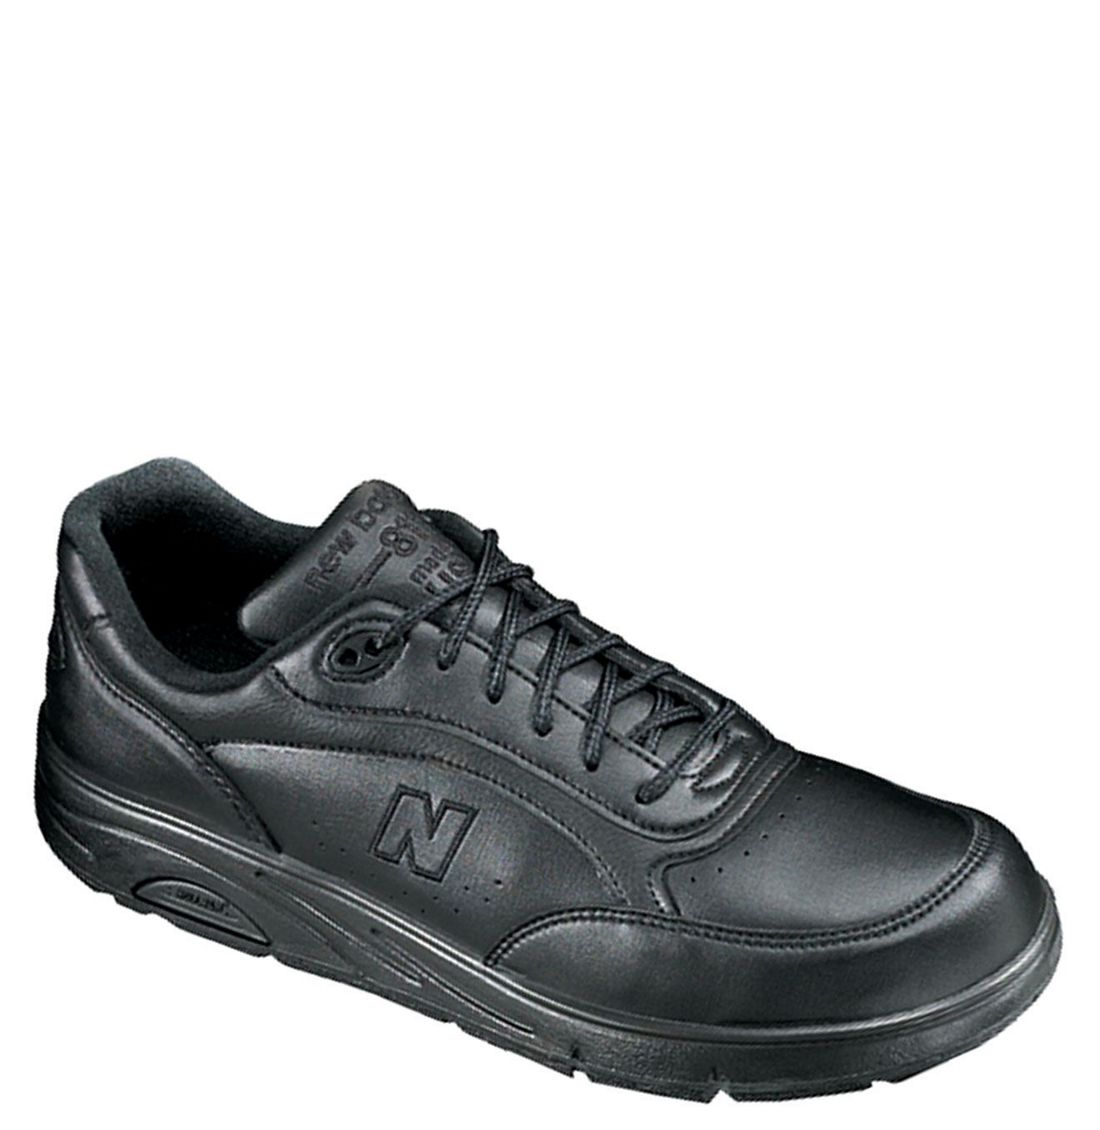 fthx7sh7 uk best s new balance walking shoe